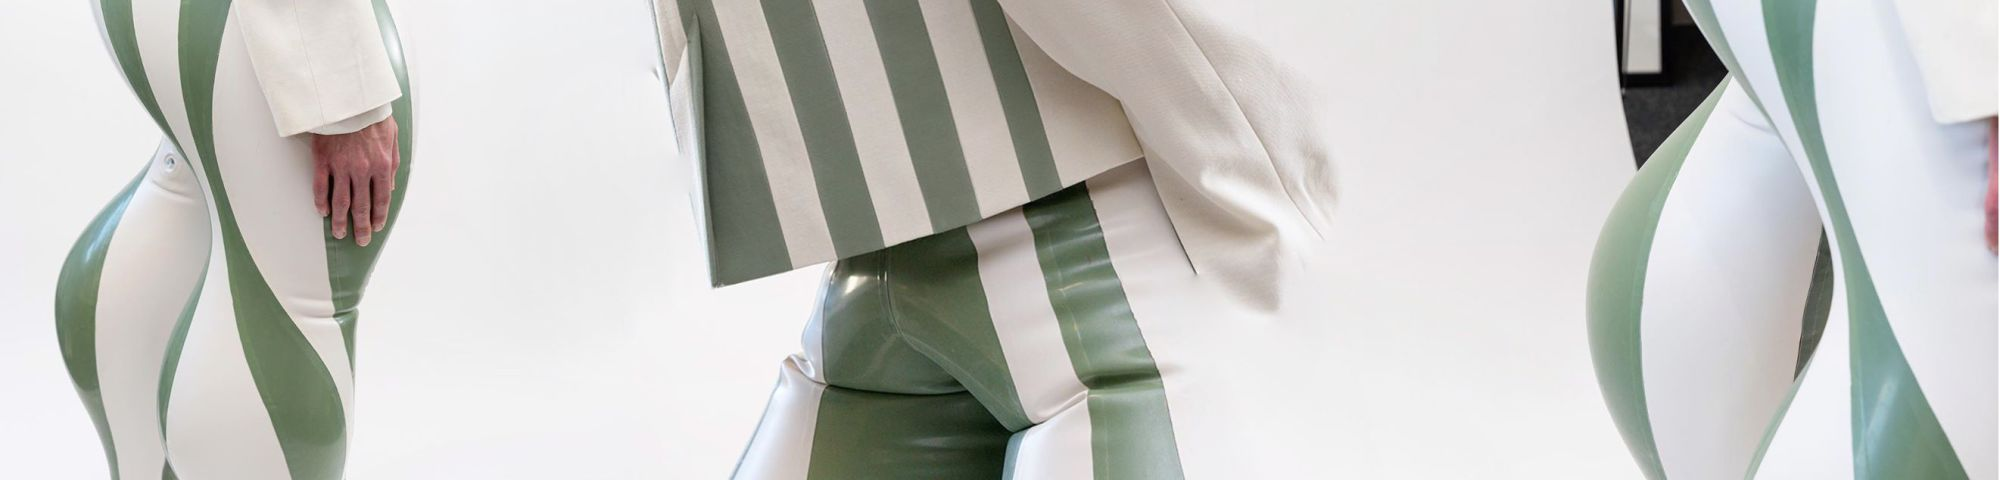 Models wearing striped inflatable latex trousers